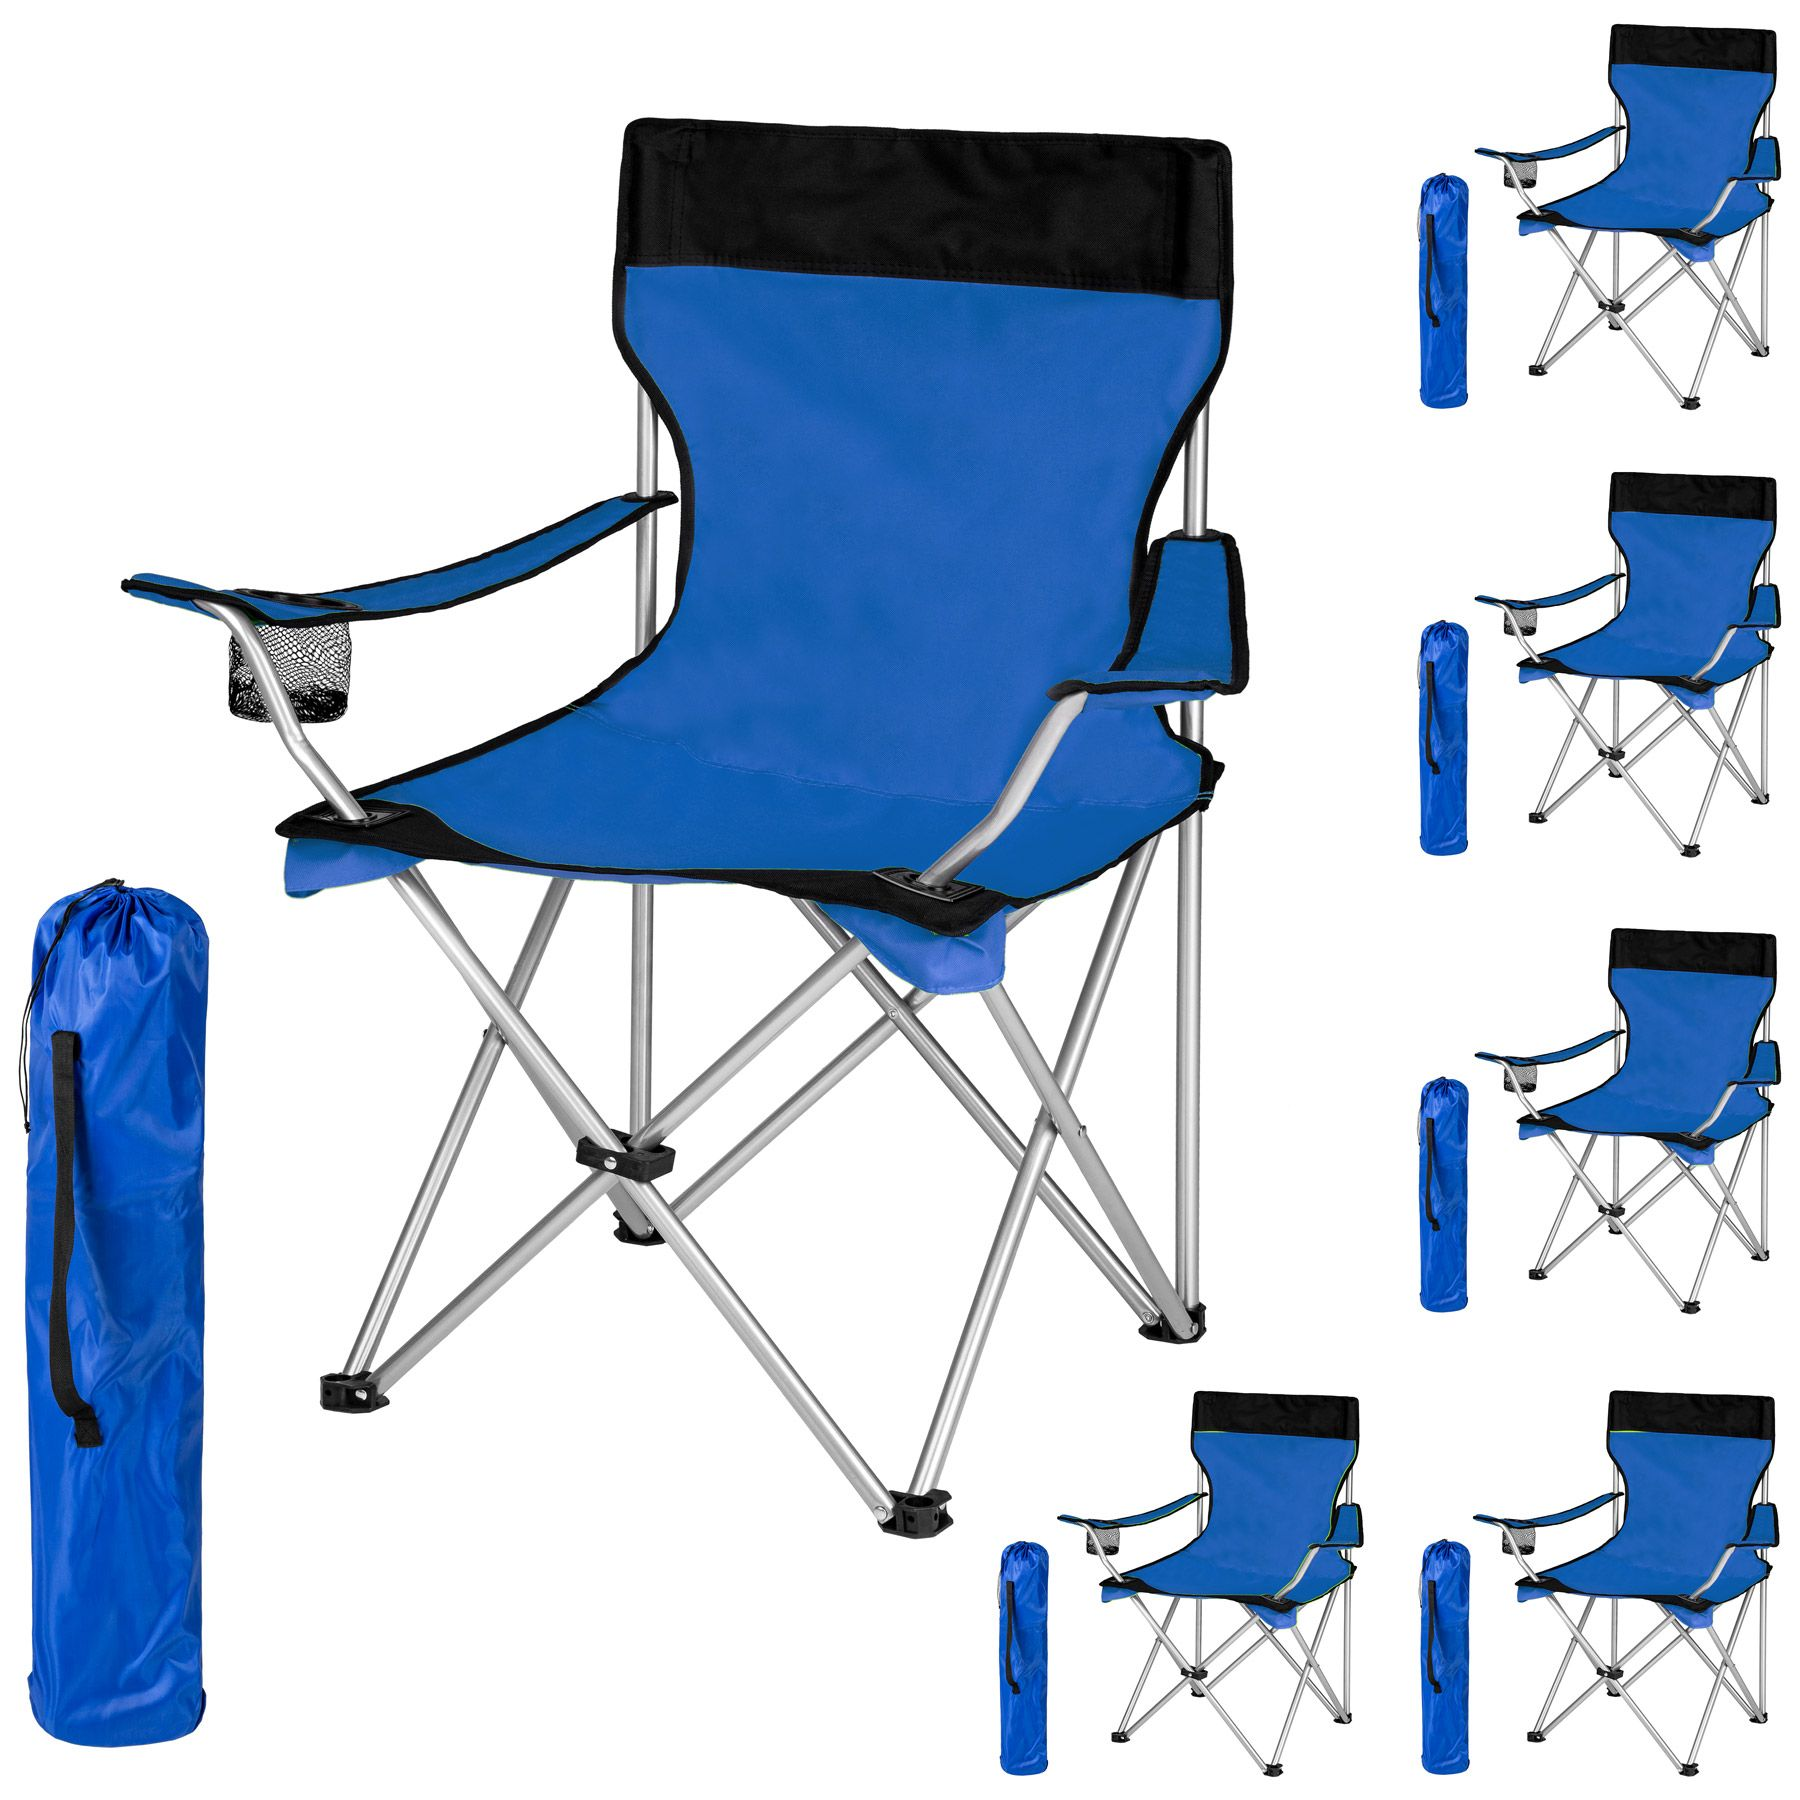 Obliging Outdoor Camping Leisure Picnic Beach Chair Ultralight Folding Fishing Chair Seat Outdoor Portable Fishing Chairs Tools Outdoor Tools Sports & Entertainment